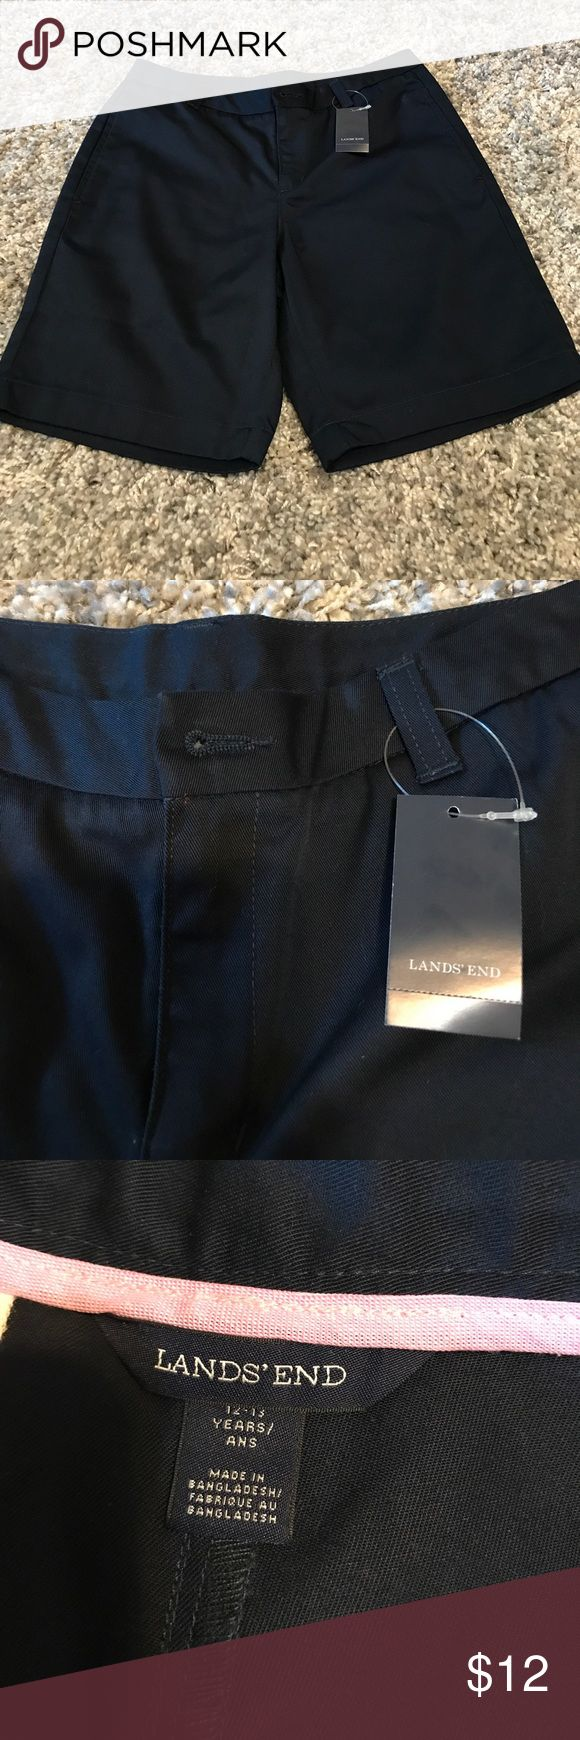 NWT Lands End Kids 12-13 Years Navy Uniform Shorts Uniform shorts new with Tags! Reasonable offers accepted. Bundle for a private discount! Lands' End Bottoms Shorts